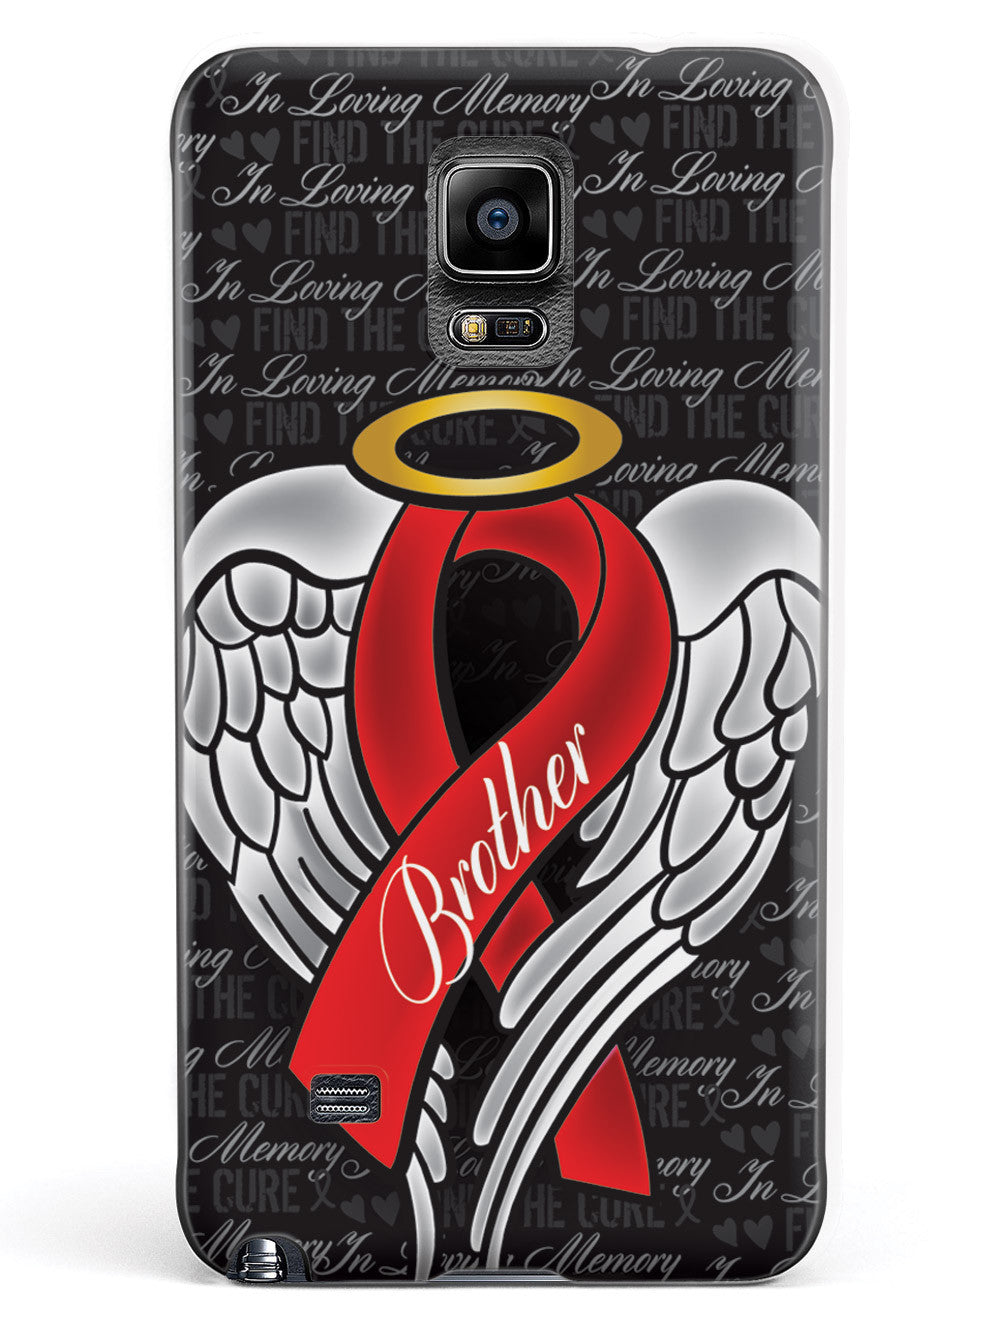 In Loving Memory of My Brother - Red Ribbon Case